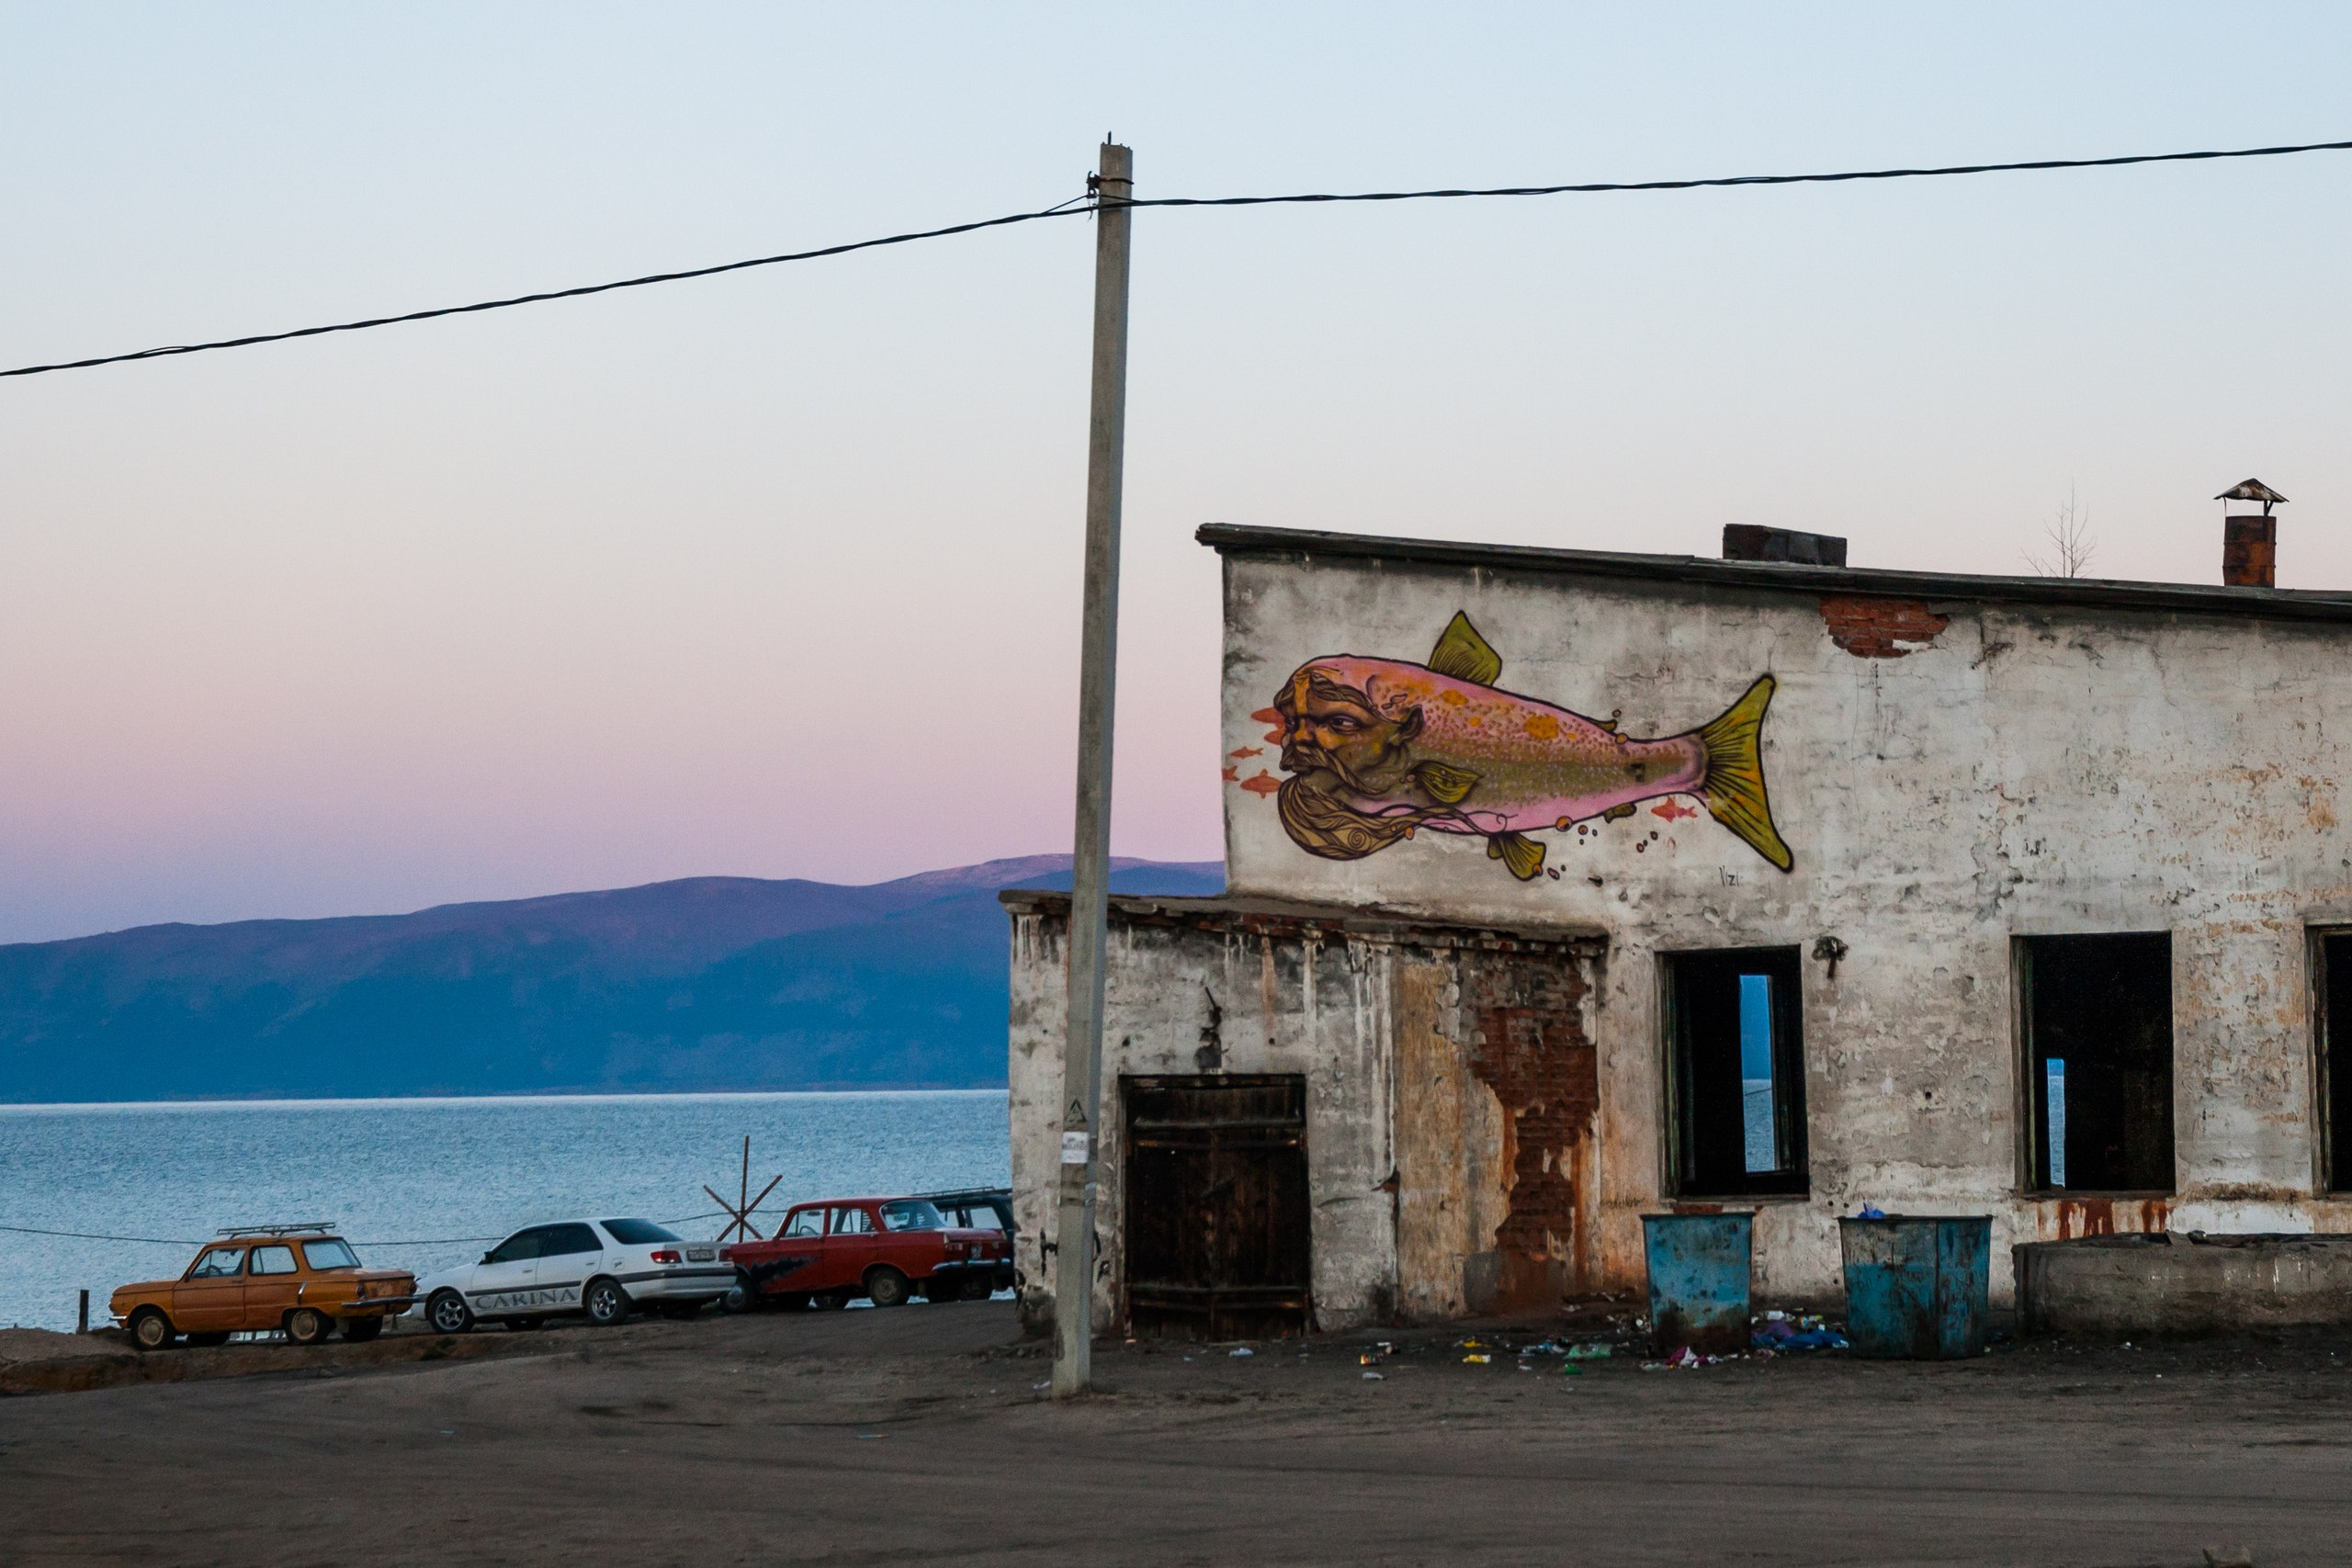 Fish, 2012. Building of a former fish factory on the Olkhon island, Baikal